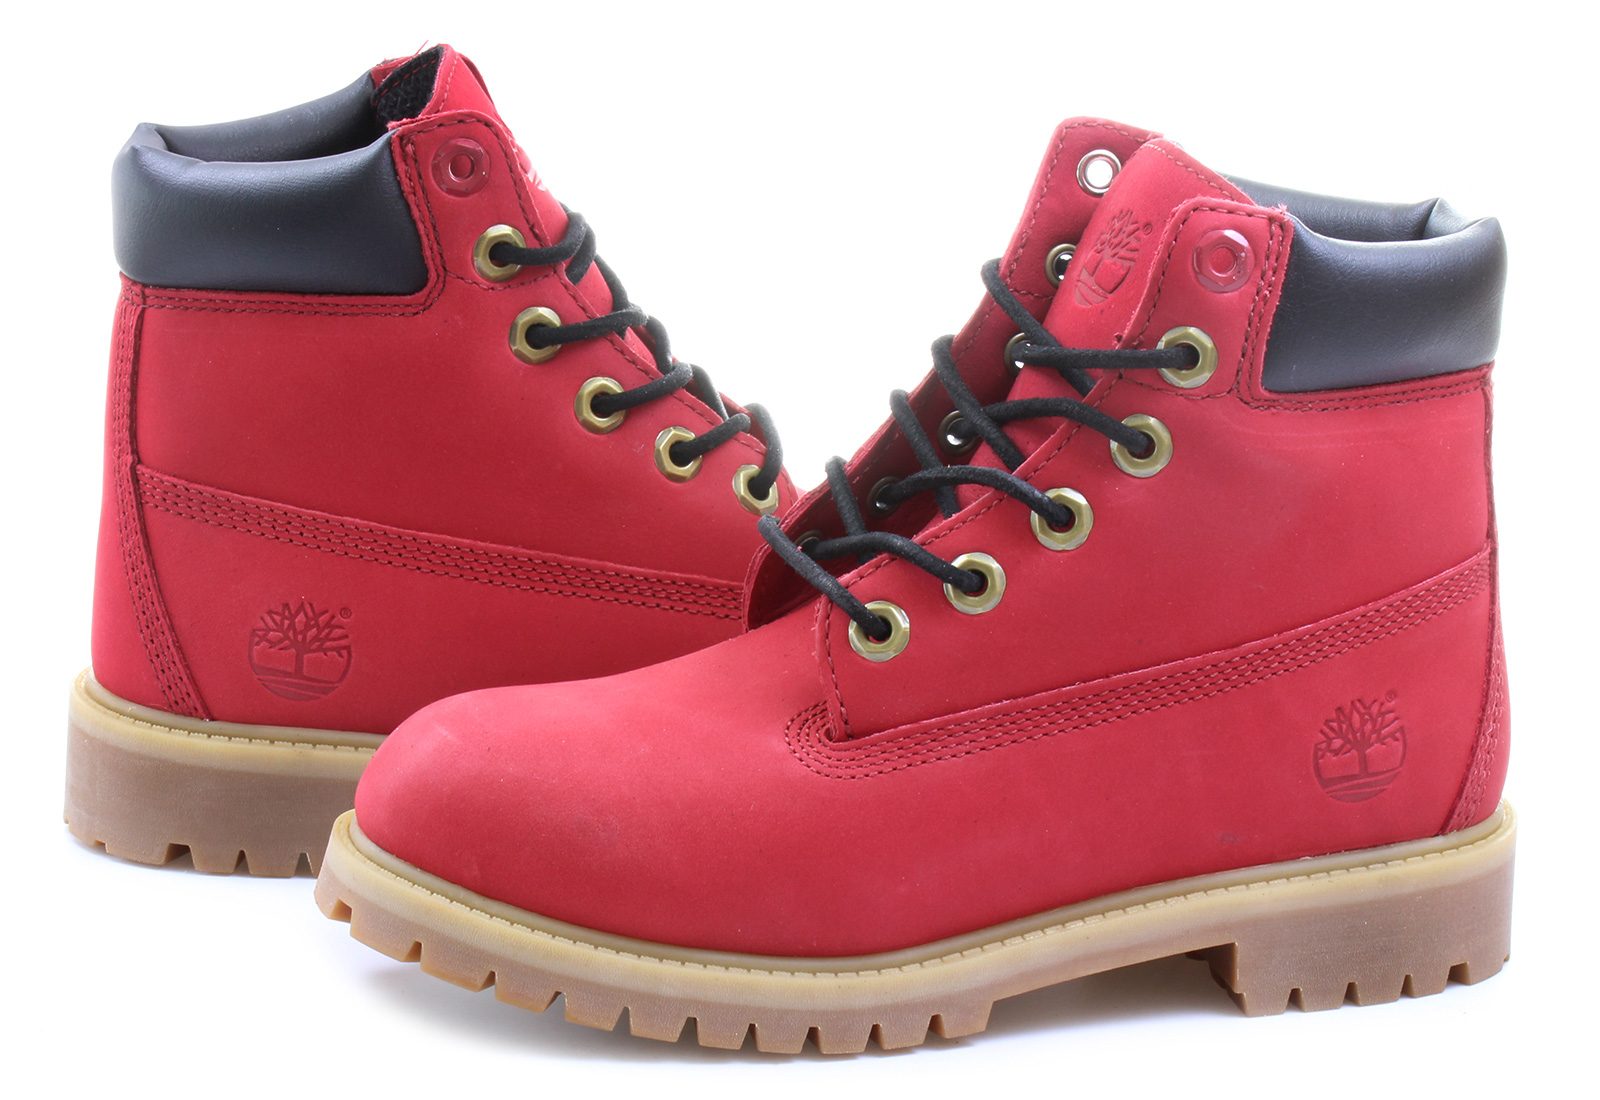 Timberland Boots - 6 Inch Premium Boot Wp - 6598R-RED ...